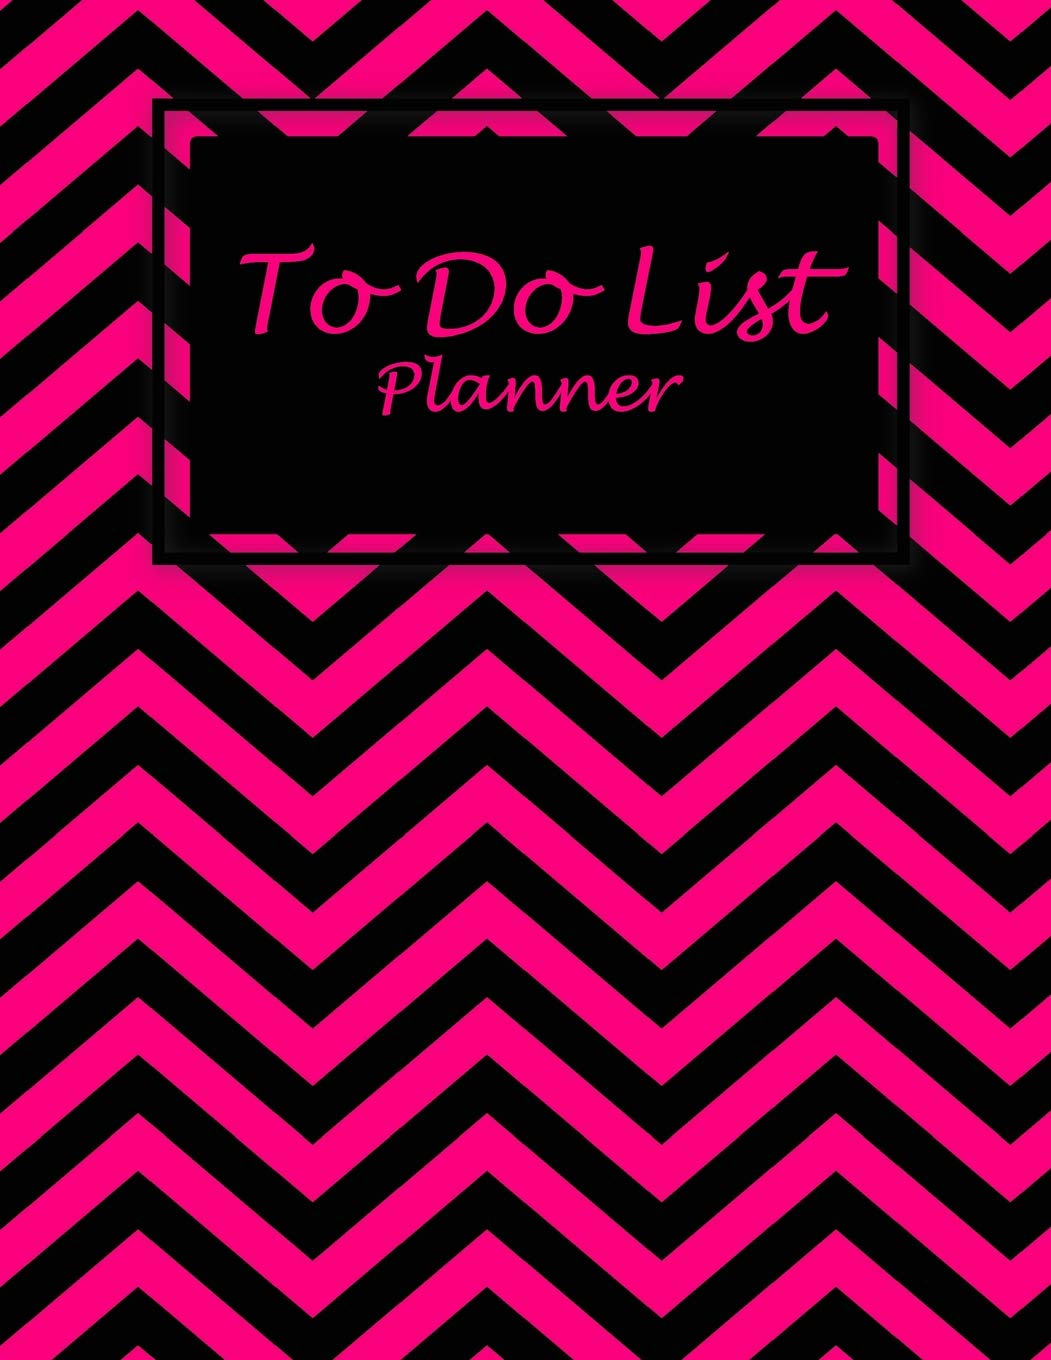 To Do List Planner: Beauty Black Pink Book, 2019 Monthly Schedule